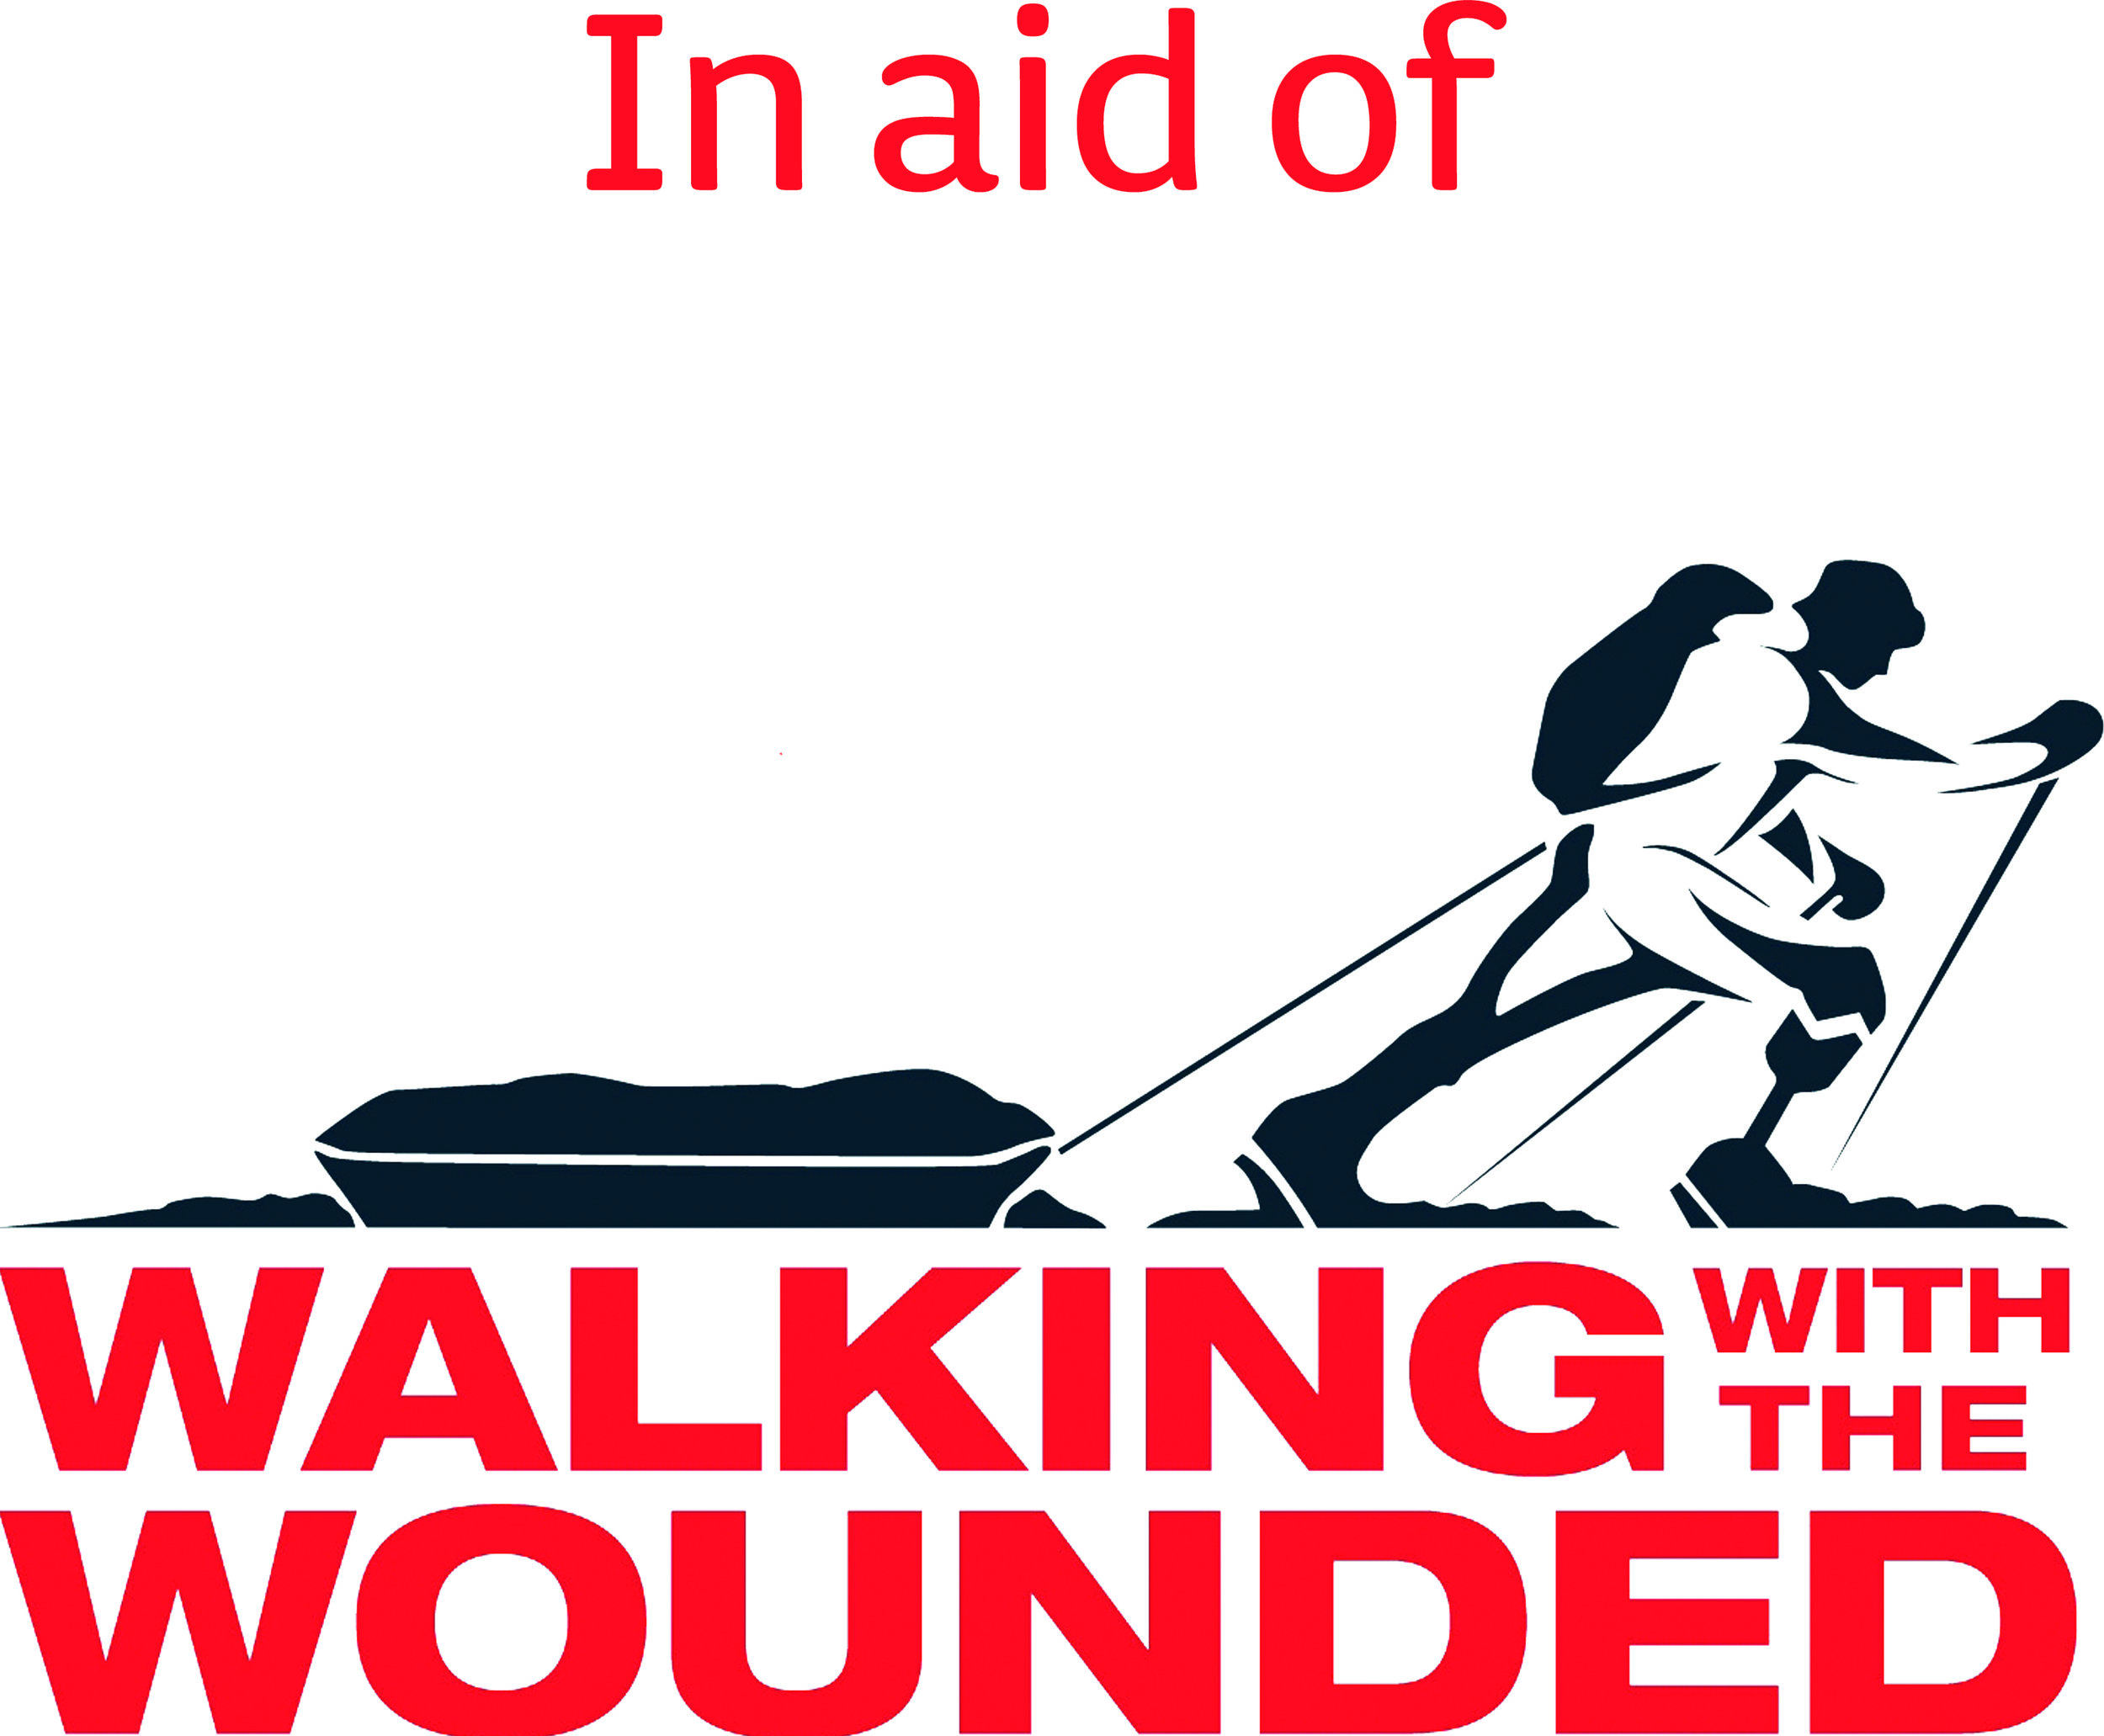 Website Logos_v04 Walking with the Wounded.jpg